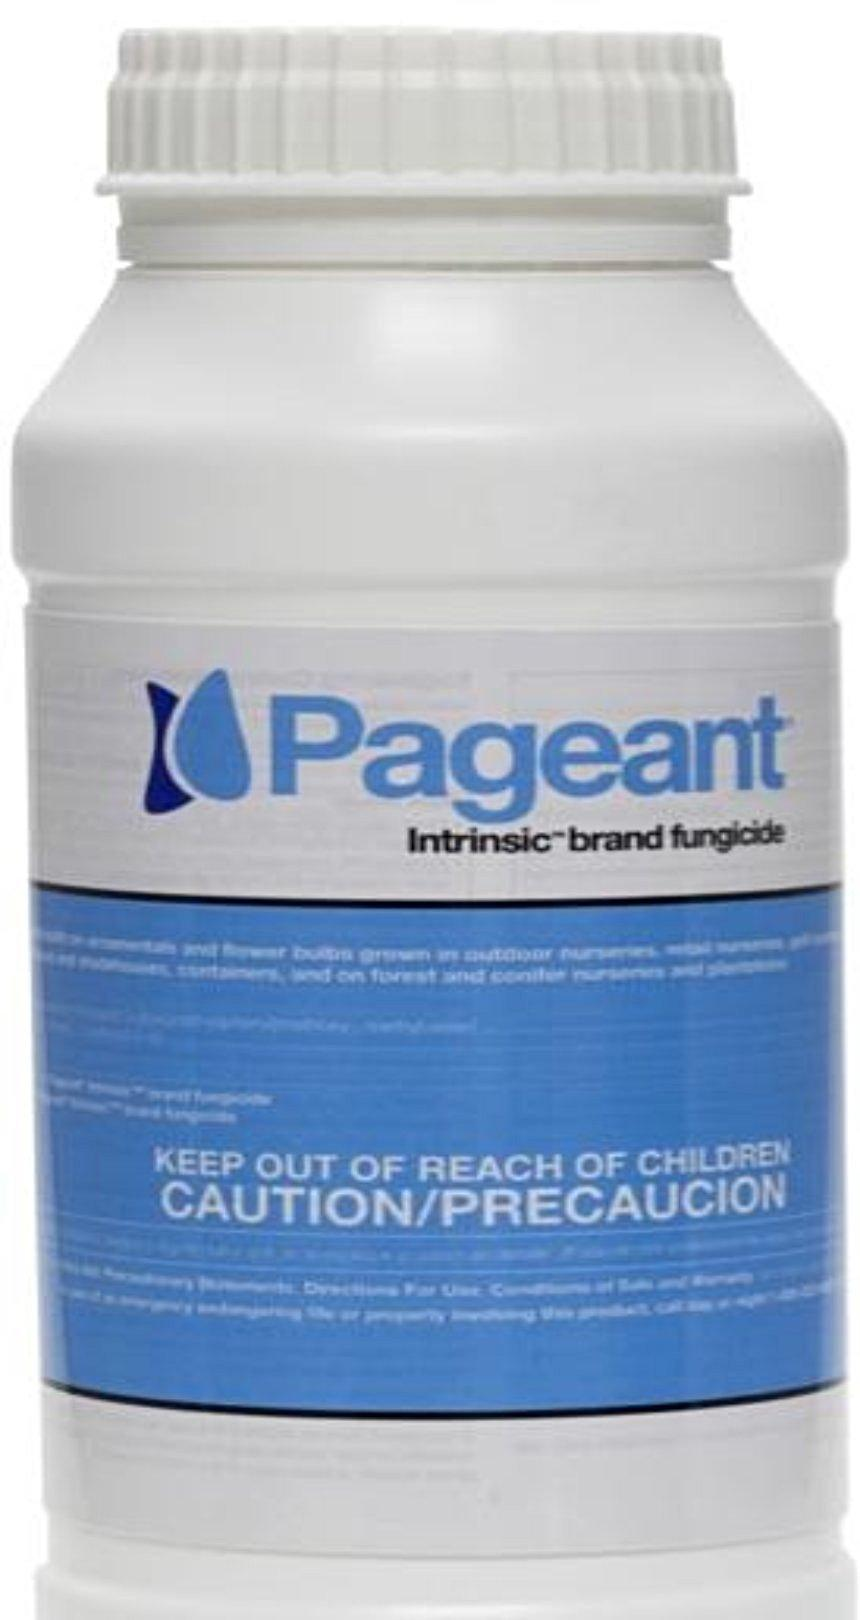 Fungicide - Pageant Intrinsic Brand Fungicide